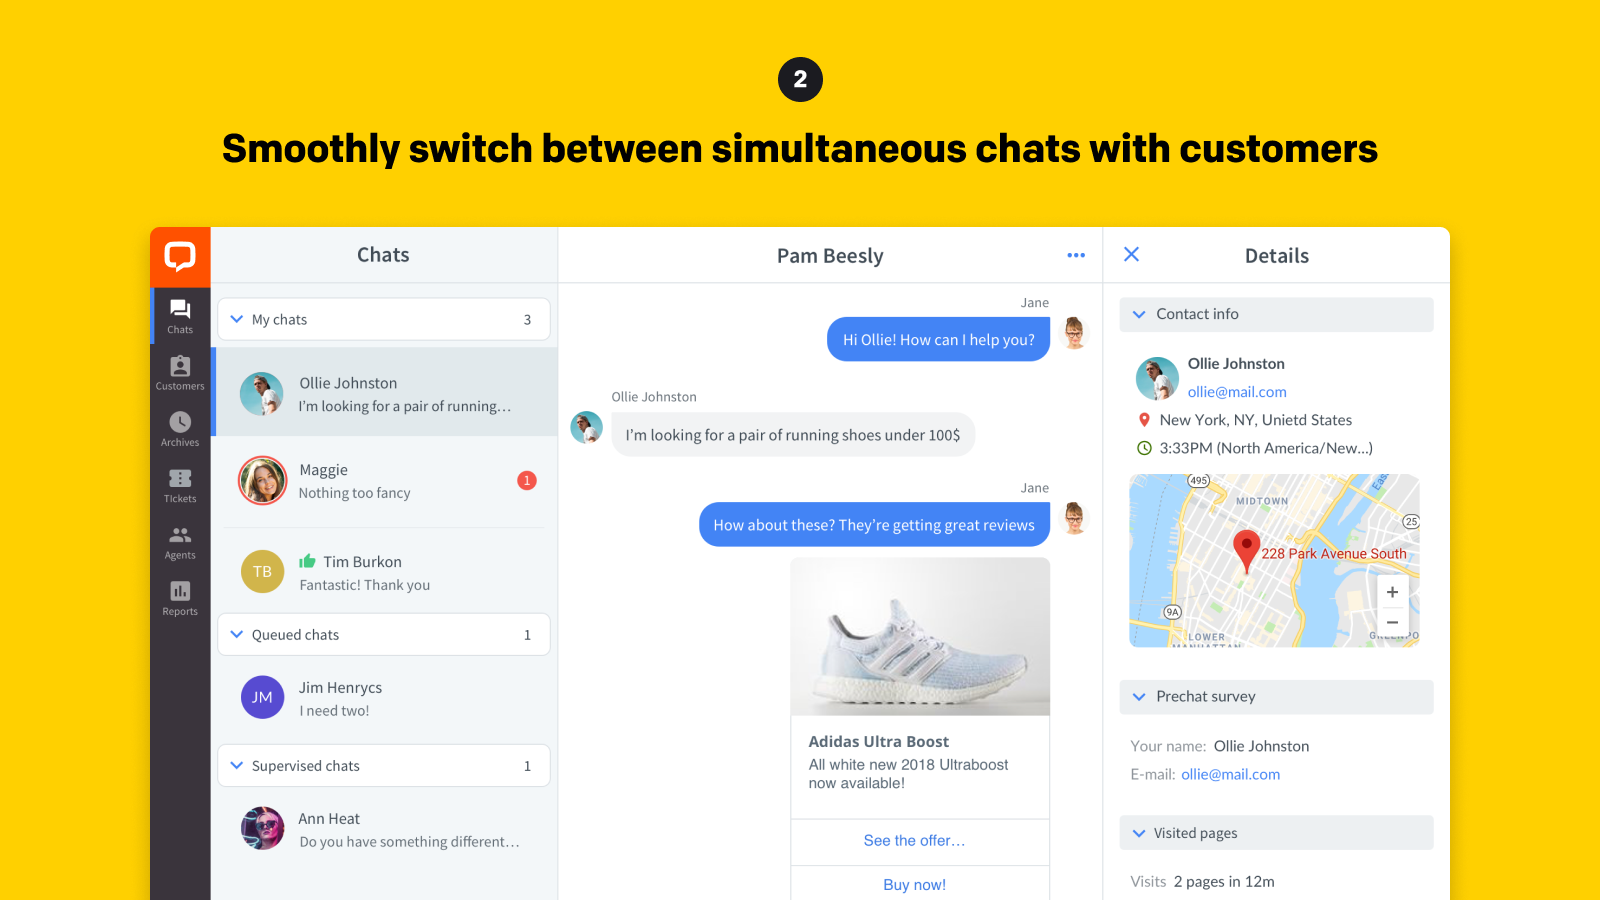 Smoothly switch between simultaneous chats with customers